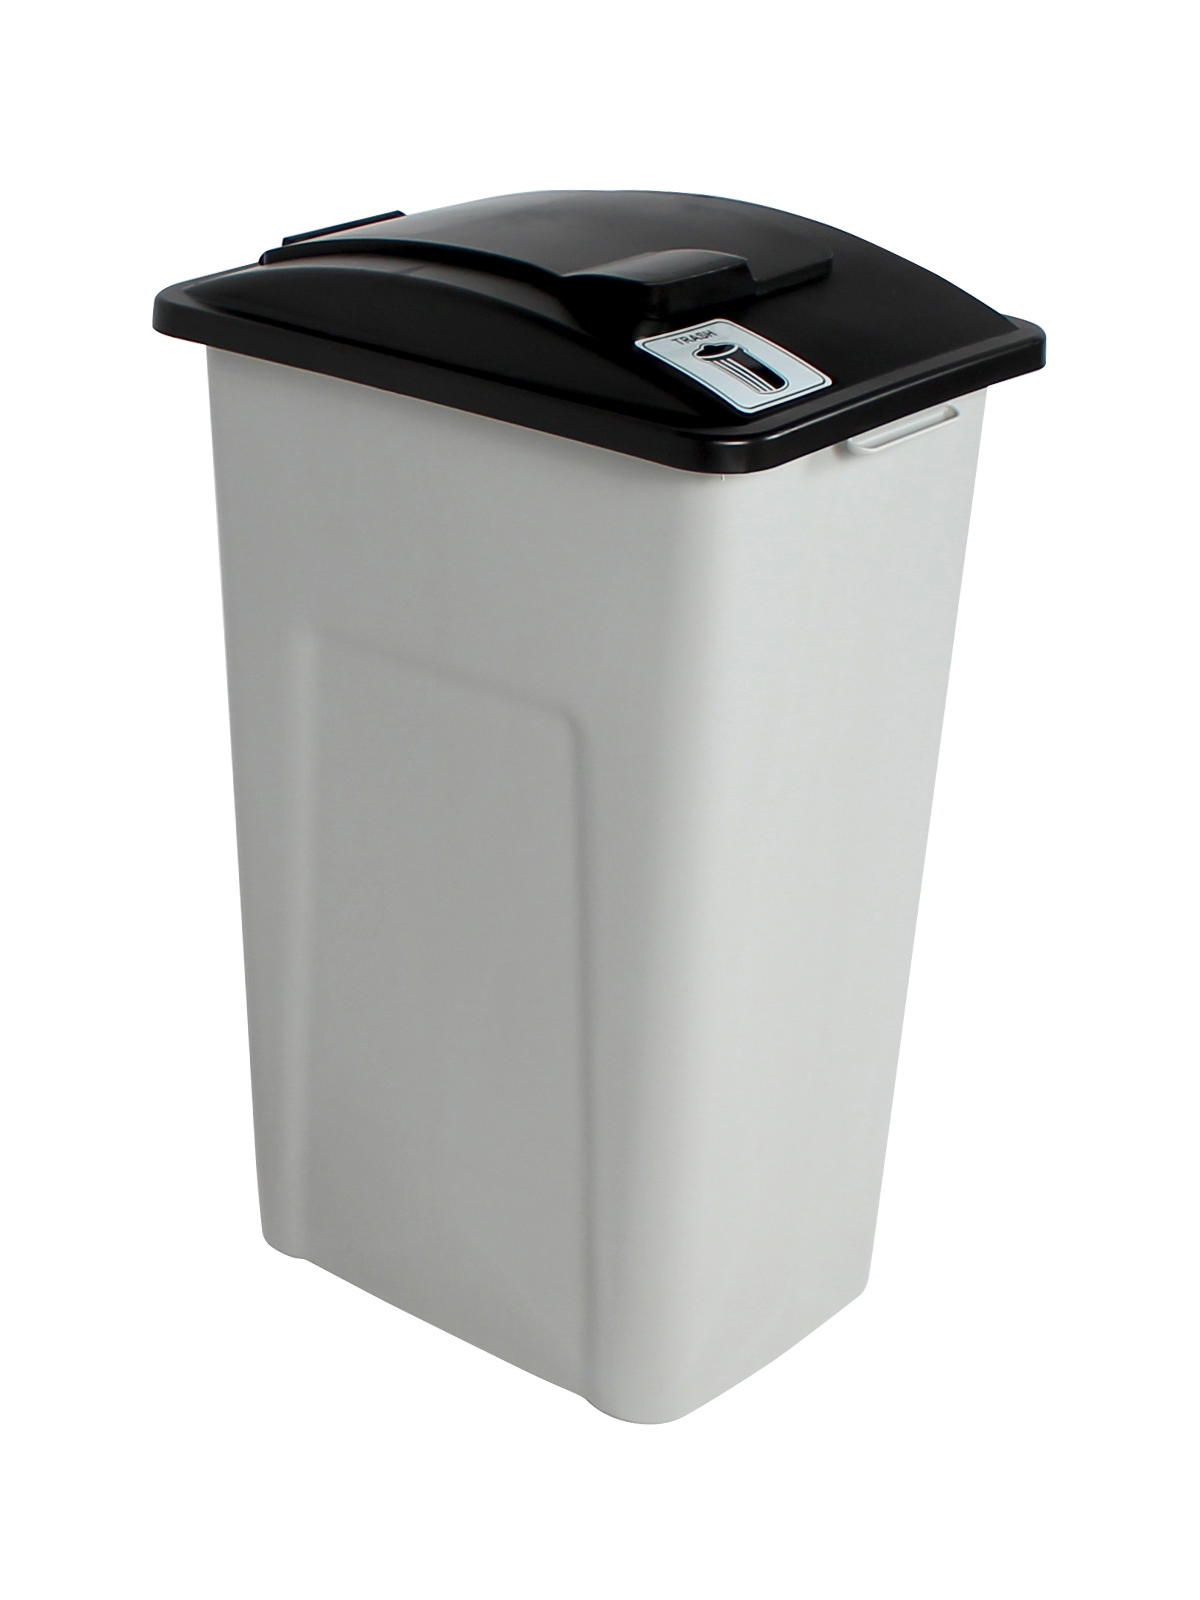 WASTE WATCHER XL - Single - Trash - Solid Lift - Grey-Black